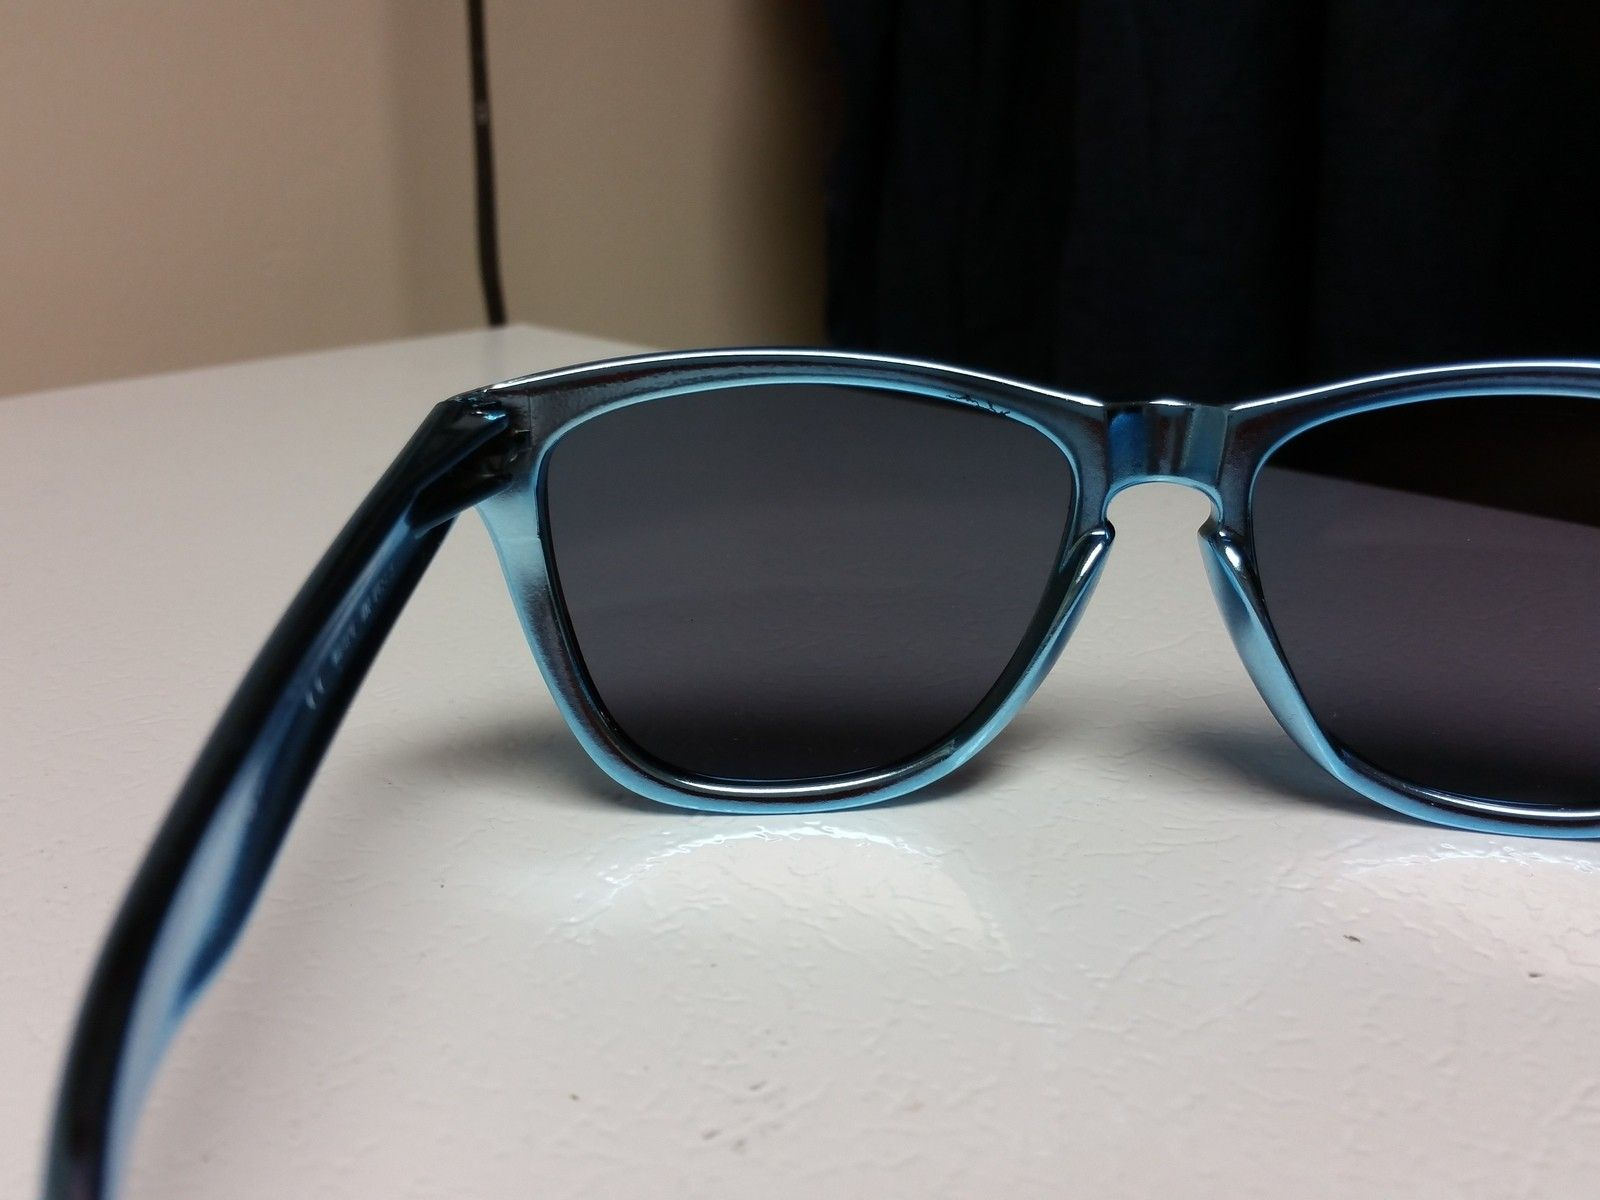 Shaun white blue chrome frogskins - 1449720359746149019686.jpg